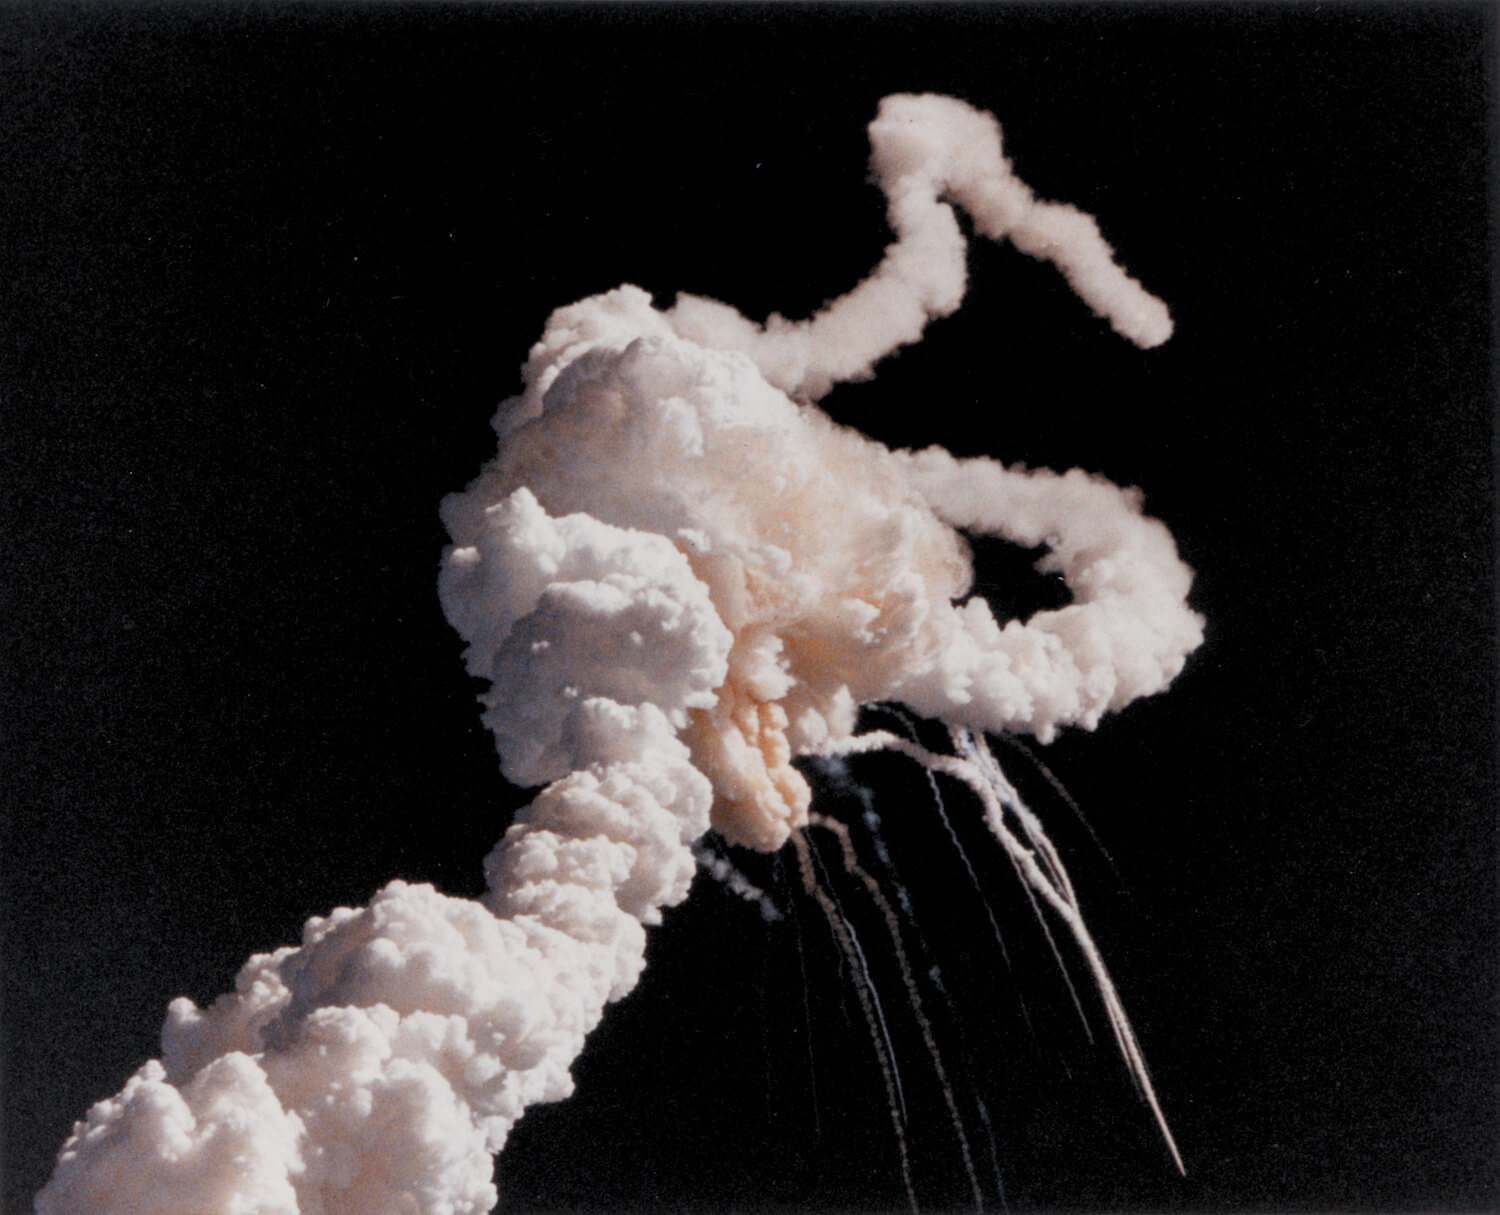 "Bild: ""On January 28, 1986, the Space Shuttle Challenger and her seven-member crew were lost when a ruptured O-ring in the right Solid Rocket Booster caused an explosion soon after launch. This photograph, taken a few seconds after the accident, shows the Space Shuttle Main Engines and Solid Rocket Booster exhaust plumes entwined around a ball of gas from the External Tank. Because shuttle launches had become almost routine after fifty successful missions, those watching the shuttle launch in person and on television found the sight of the explosion especially shocking and difficult to believe until NASA confirmed the accident."""